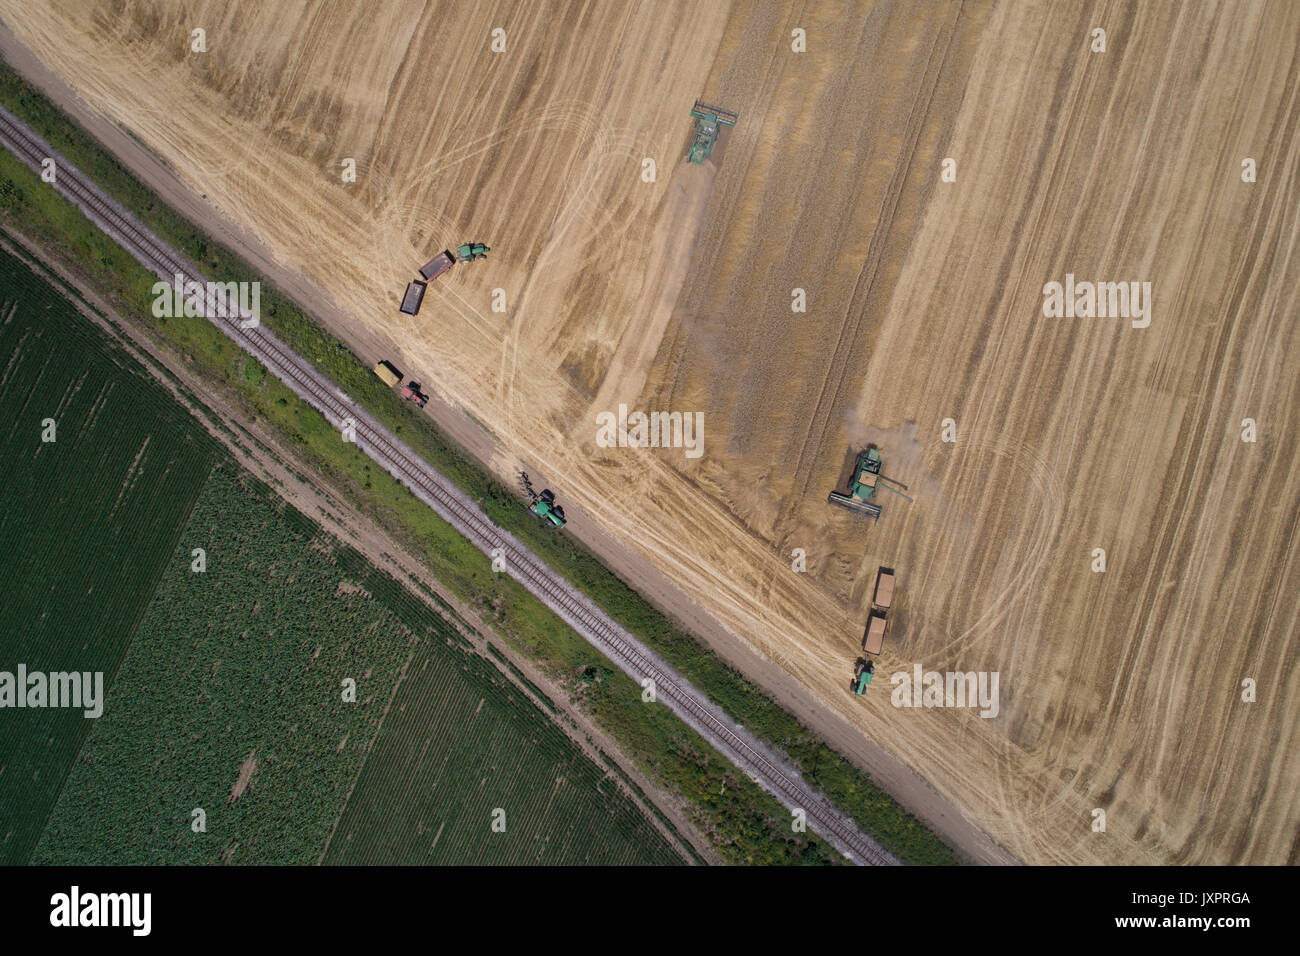 Aerial image of combine harvesters and tractors working in ripe golden wheat field. Harvesting in summer time - Stock Image